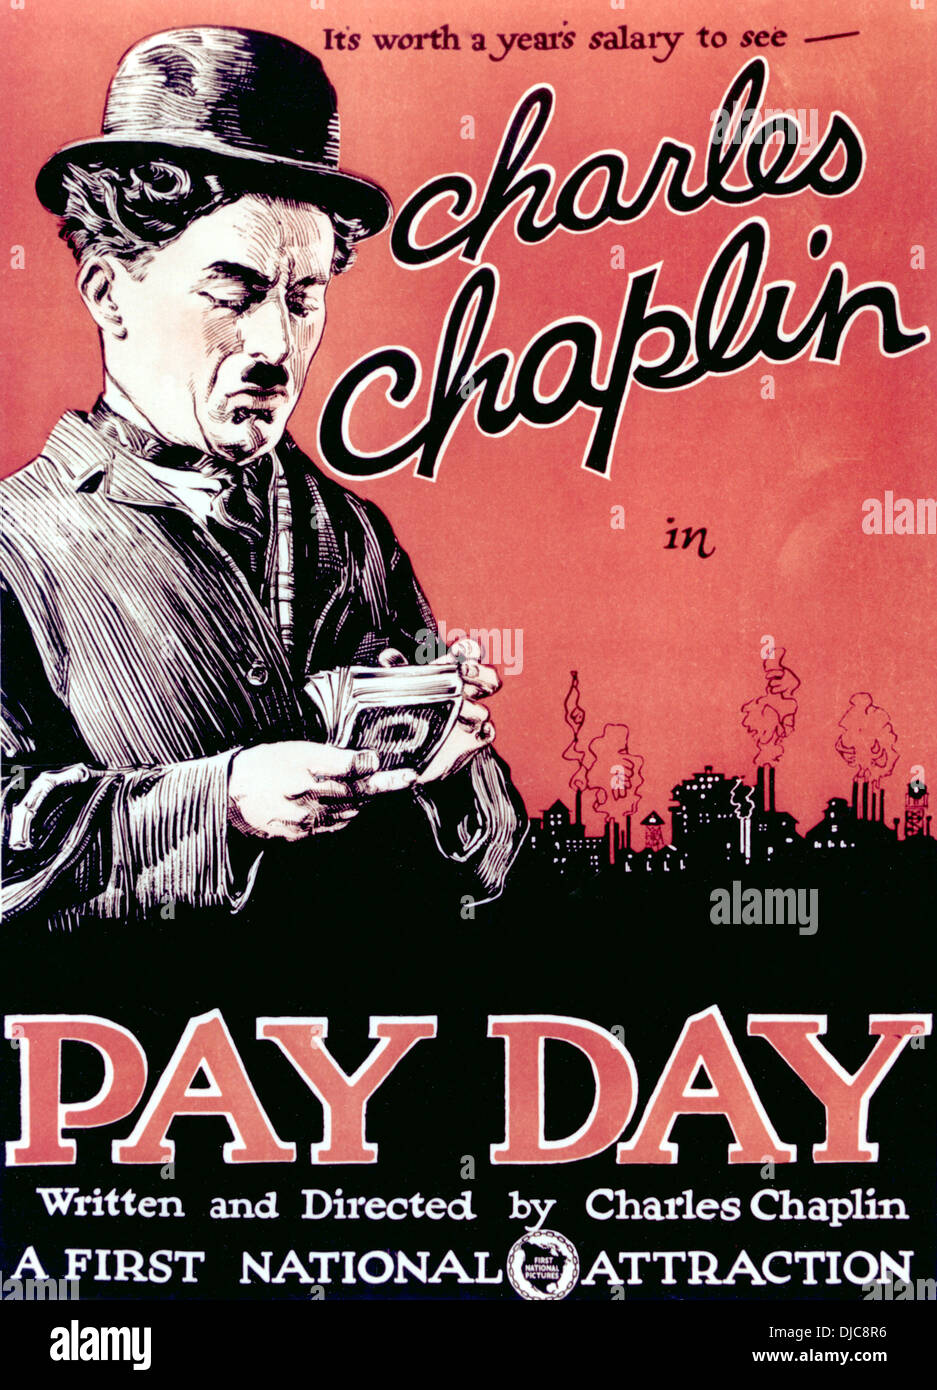 Short Circuit Movie Posters From Poster Shop Charlie Chaplin Stock Photos Pay Day Starring 1922 Image